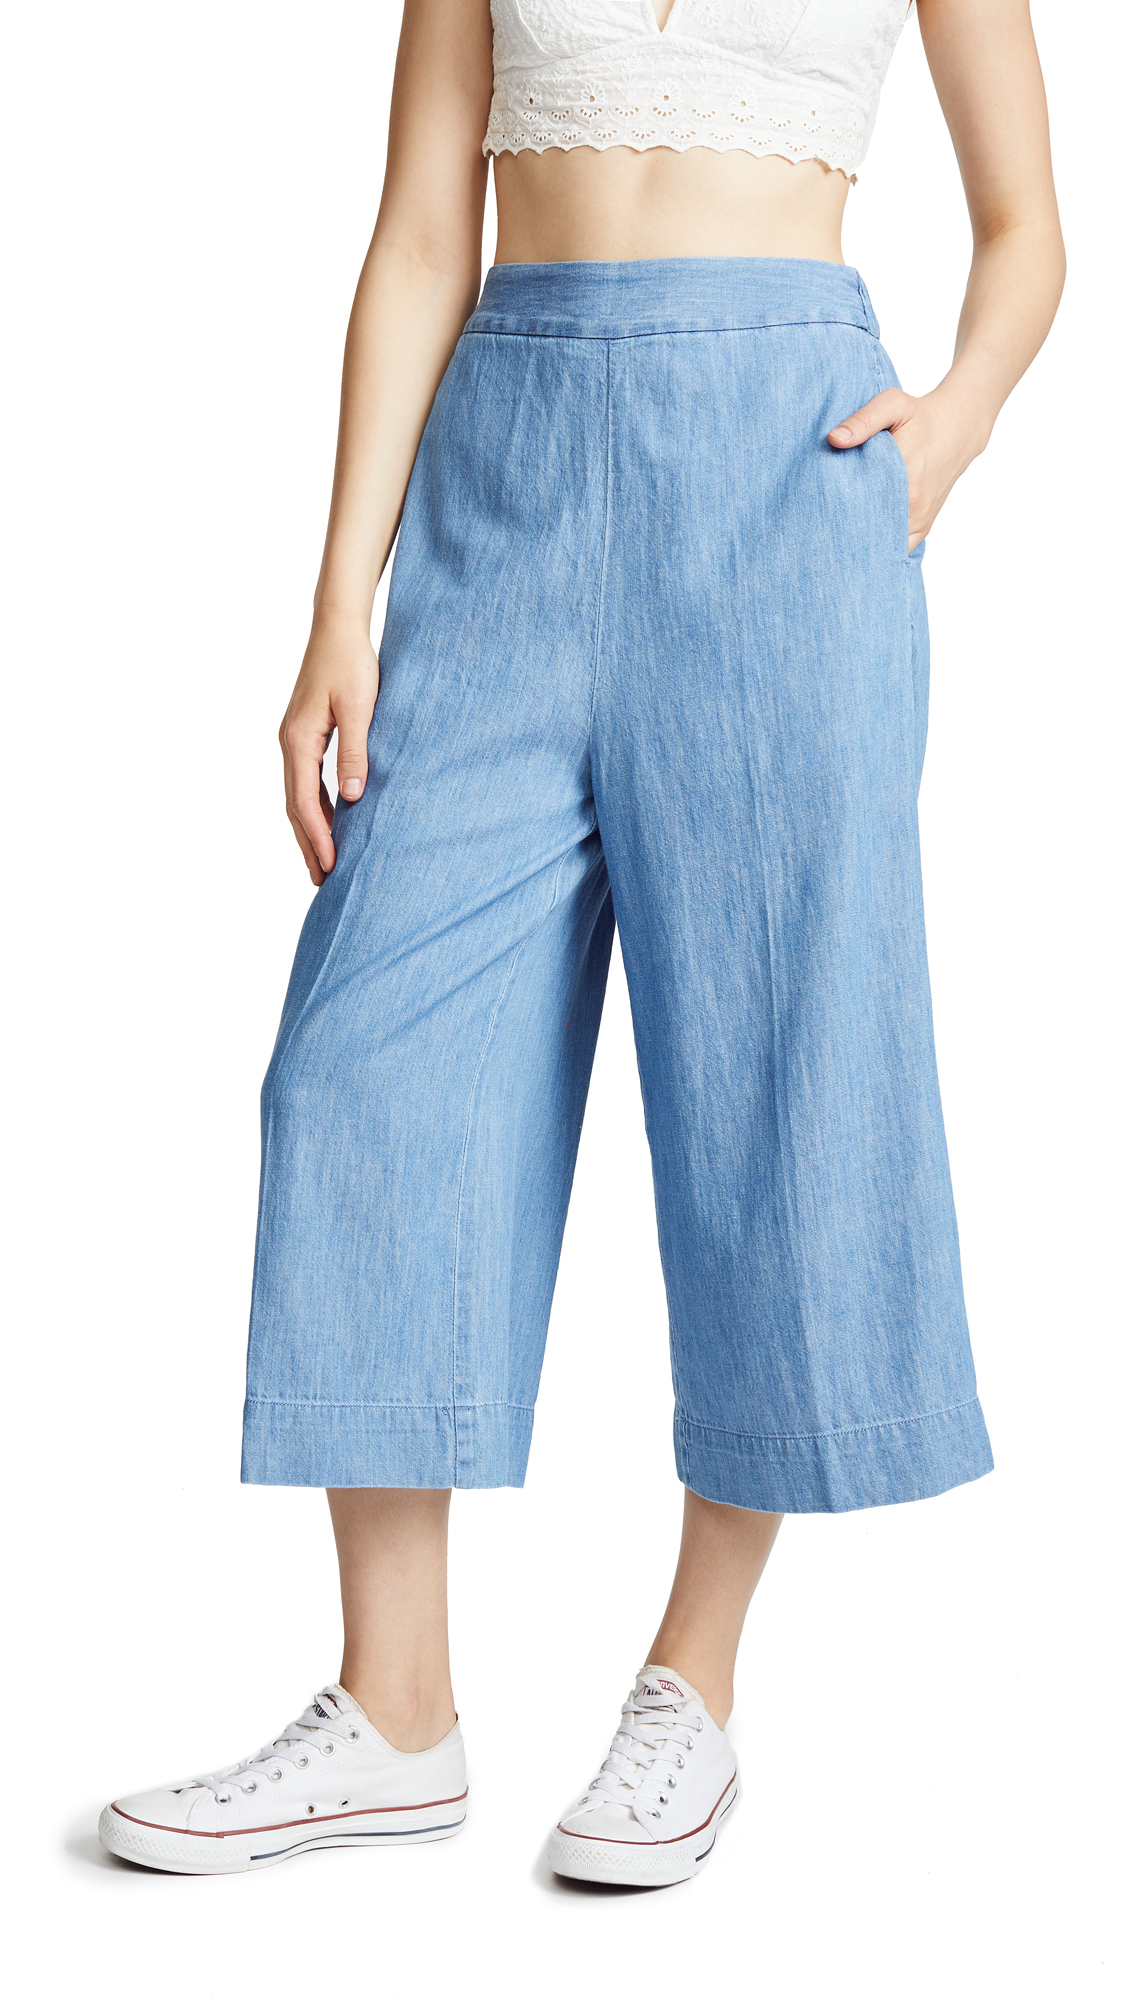 b1c9f25c61 Madewell Huston Crop Pants